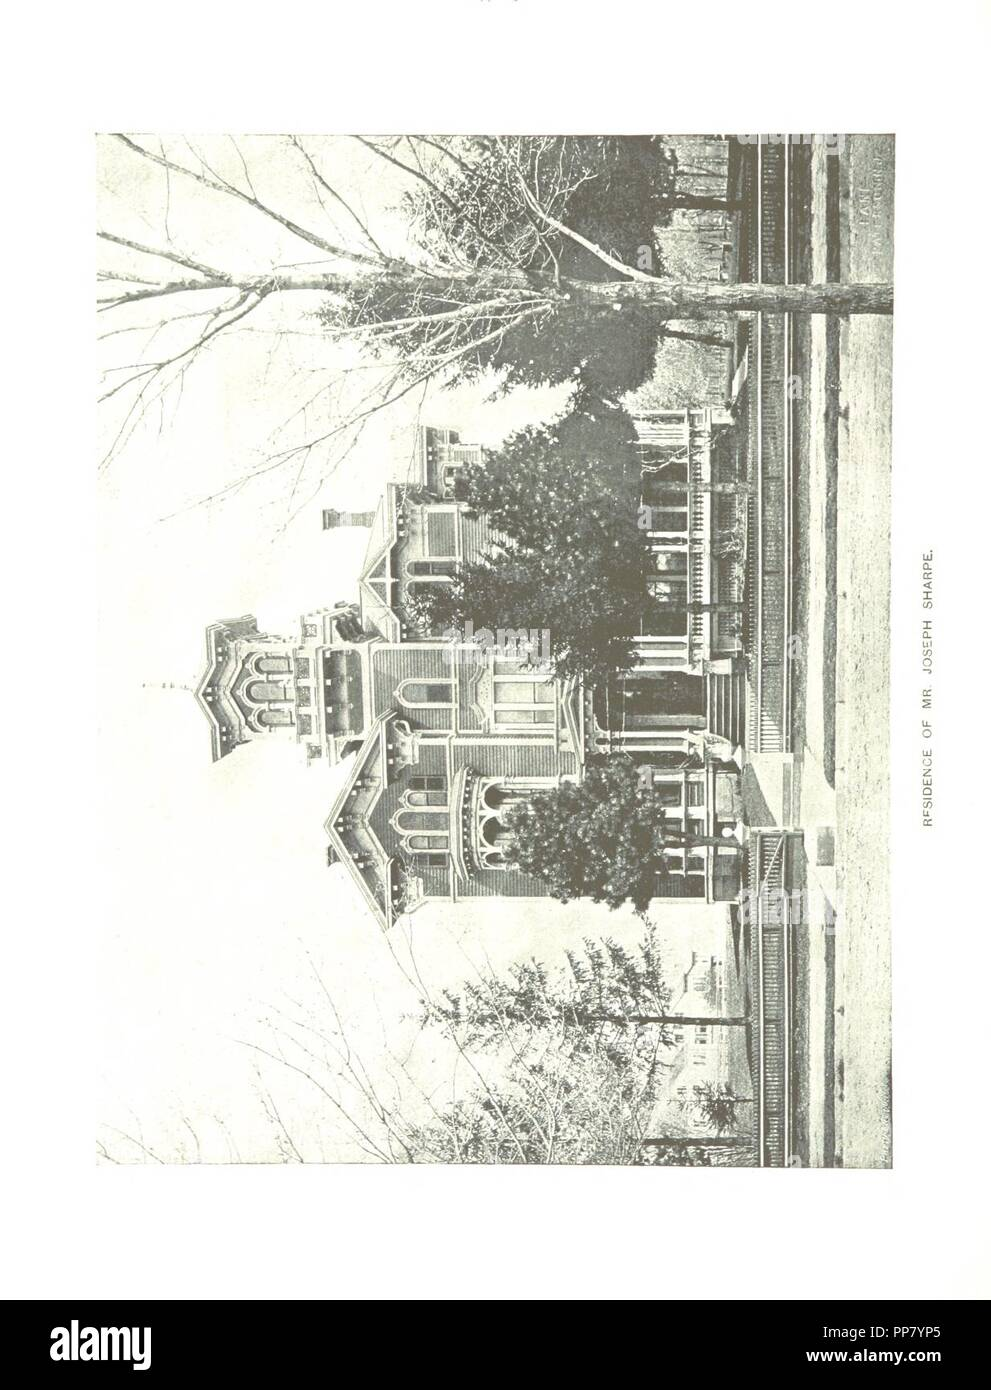 Image  from page 284 of 'Paterson, New Jersey. Its advantages for manufacturing and residence its industries, prominent men, banks, schools, churches, etc' . - Stock Image